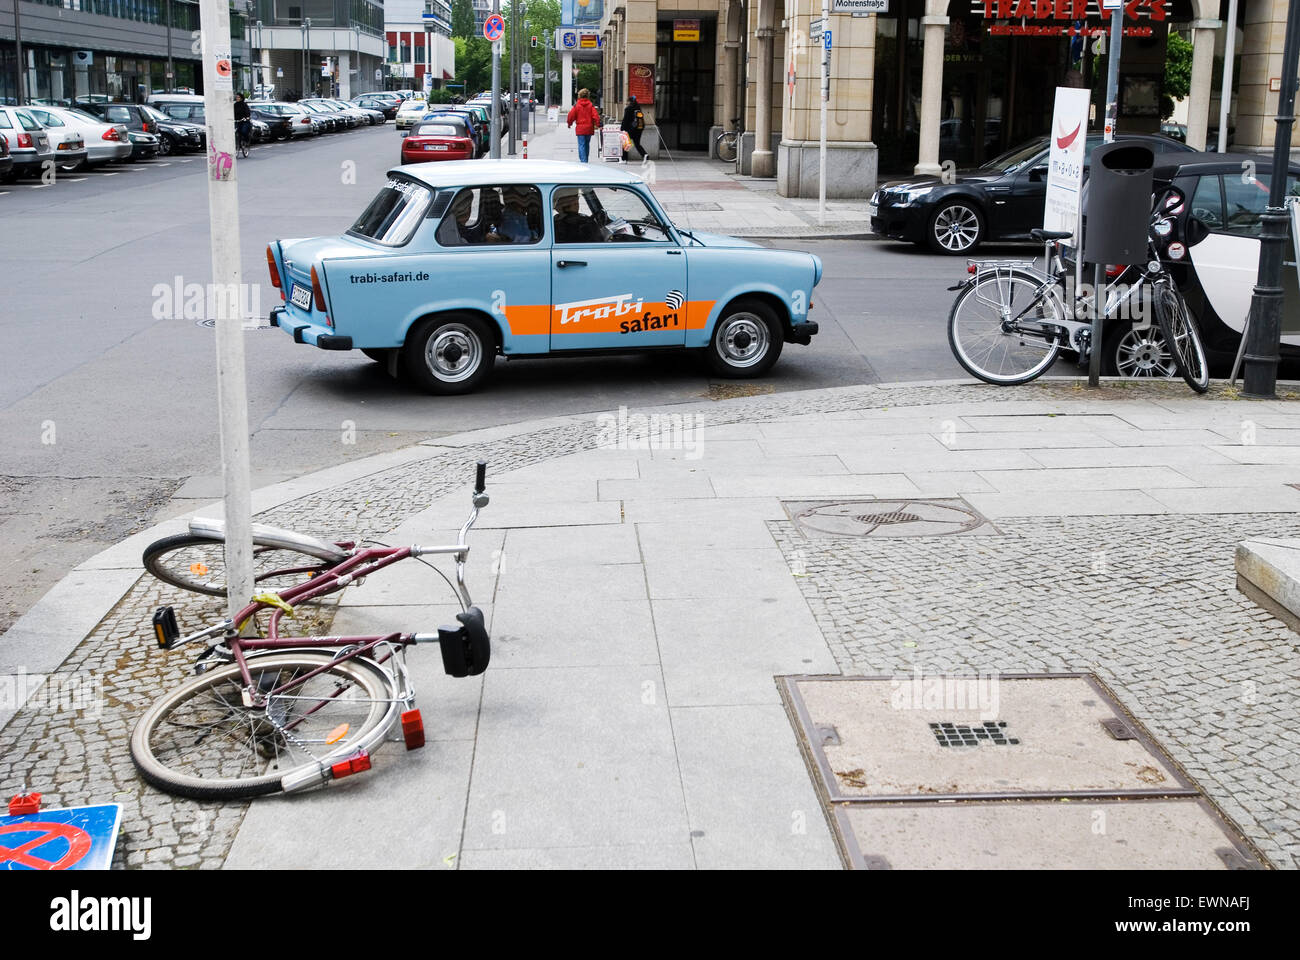 Streetscene with broken bicycle and trabant in Berlin Germany Europe - Stock Image